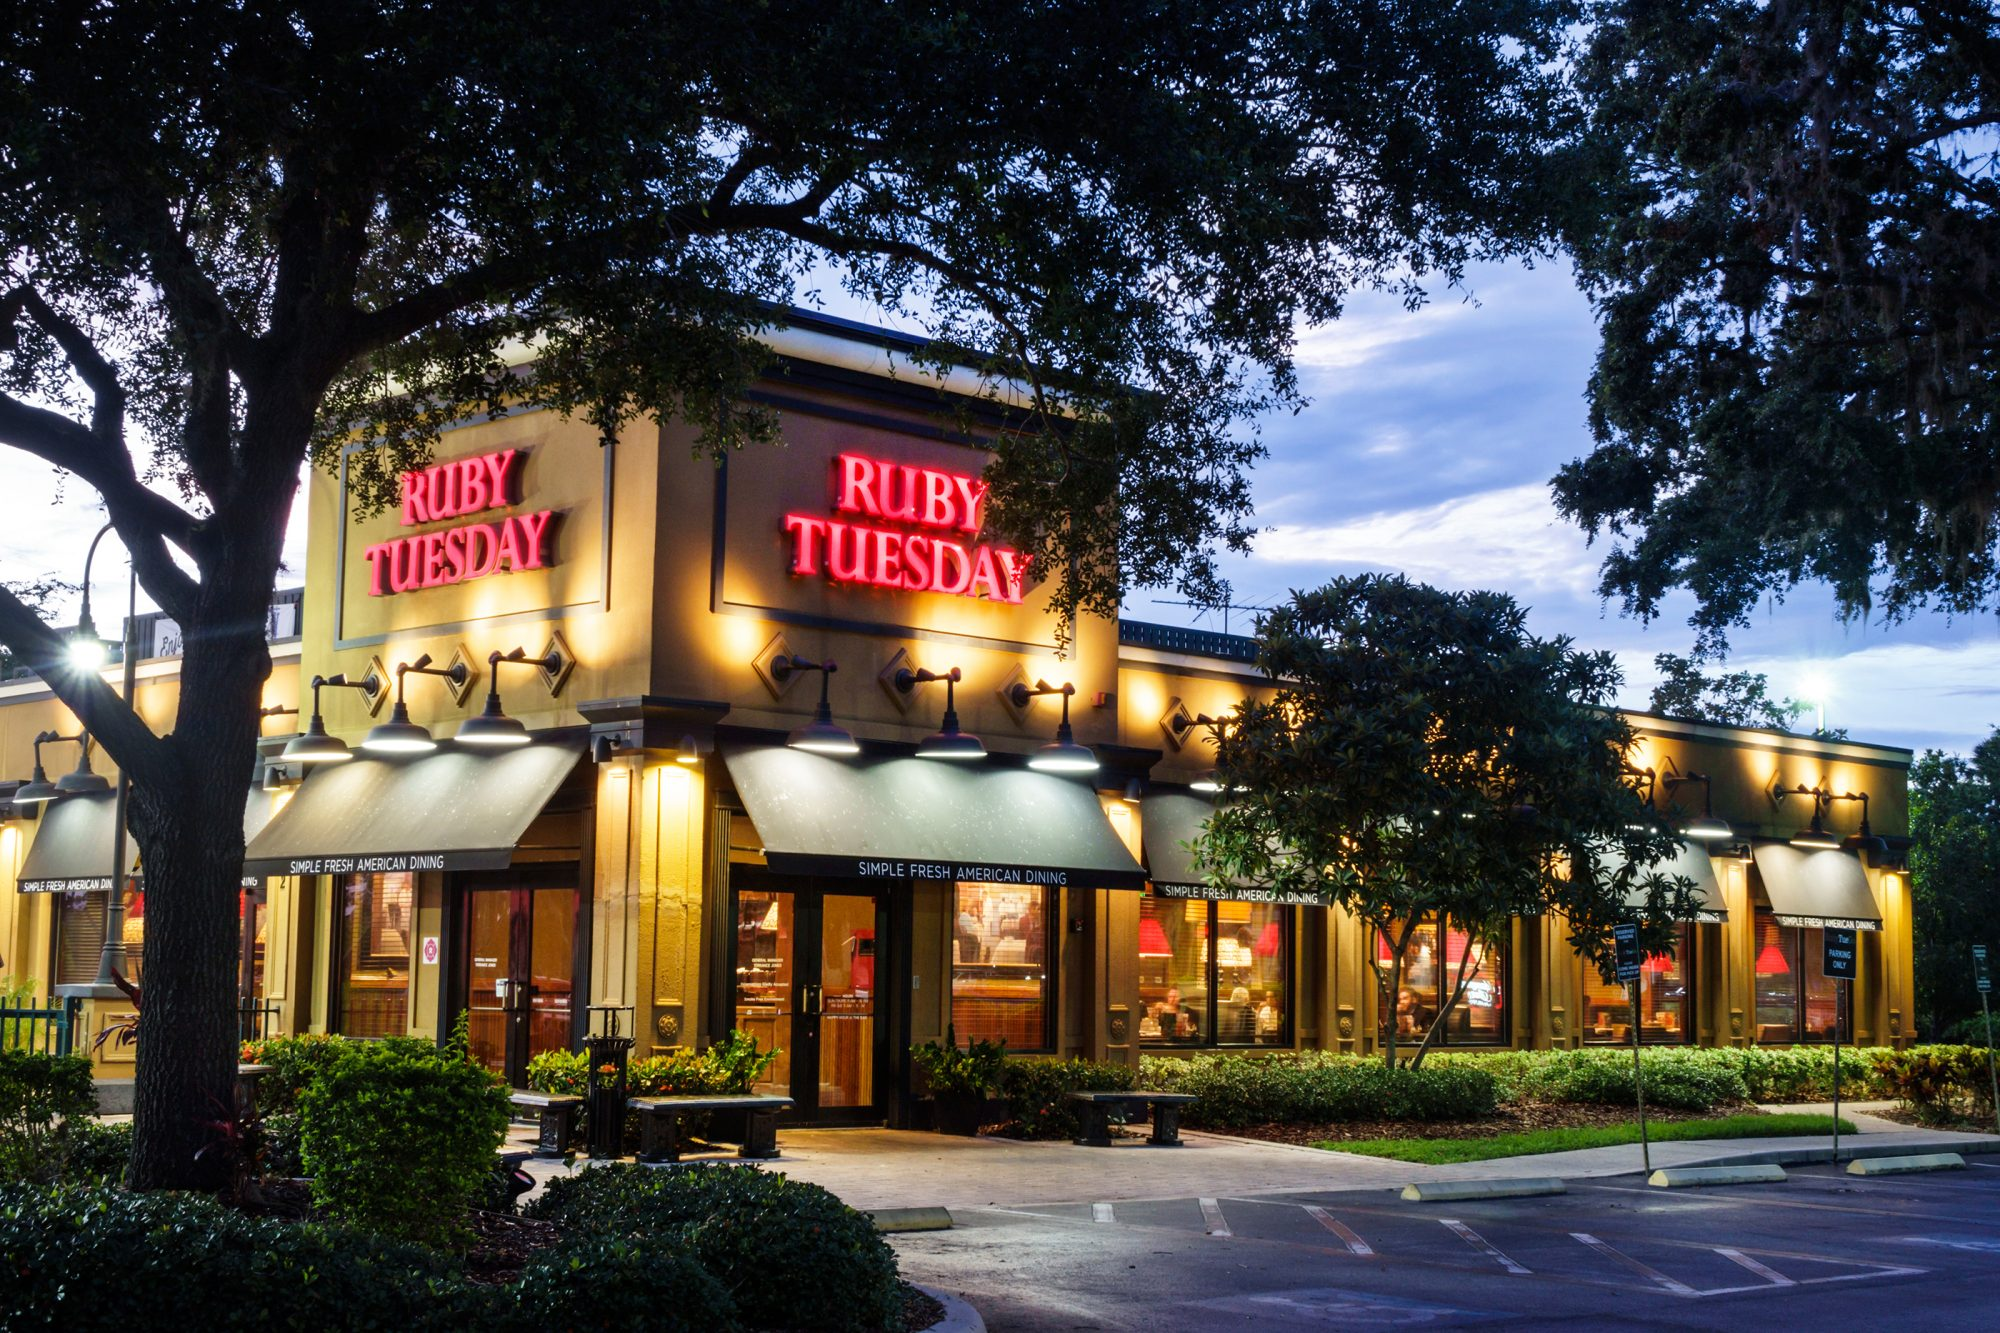 The exterior of Ruby Tuesday at dusk.